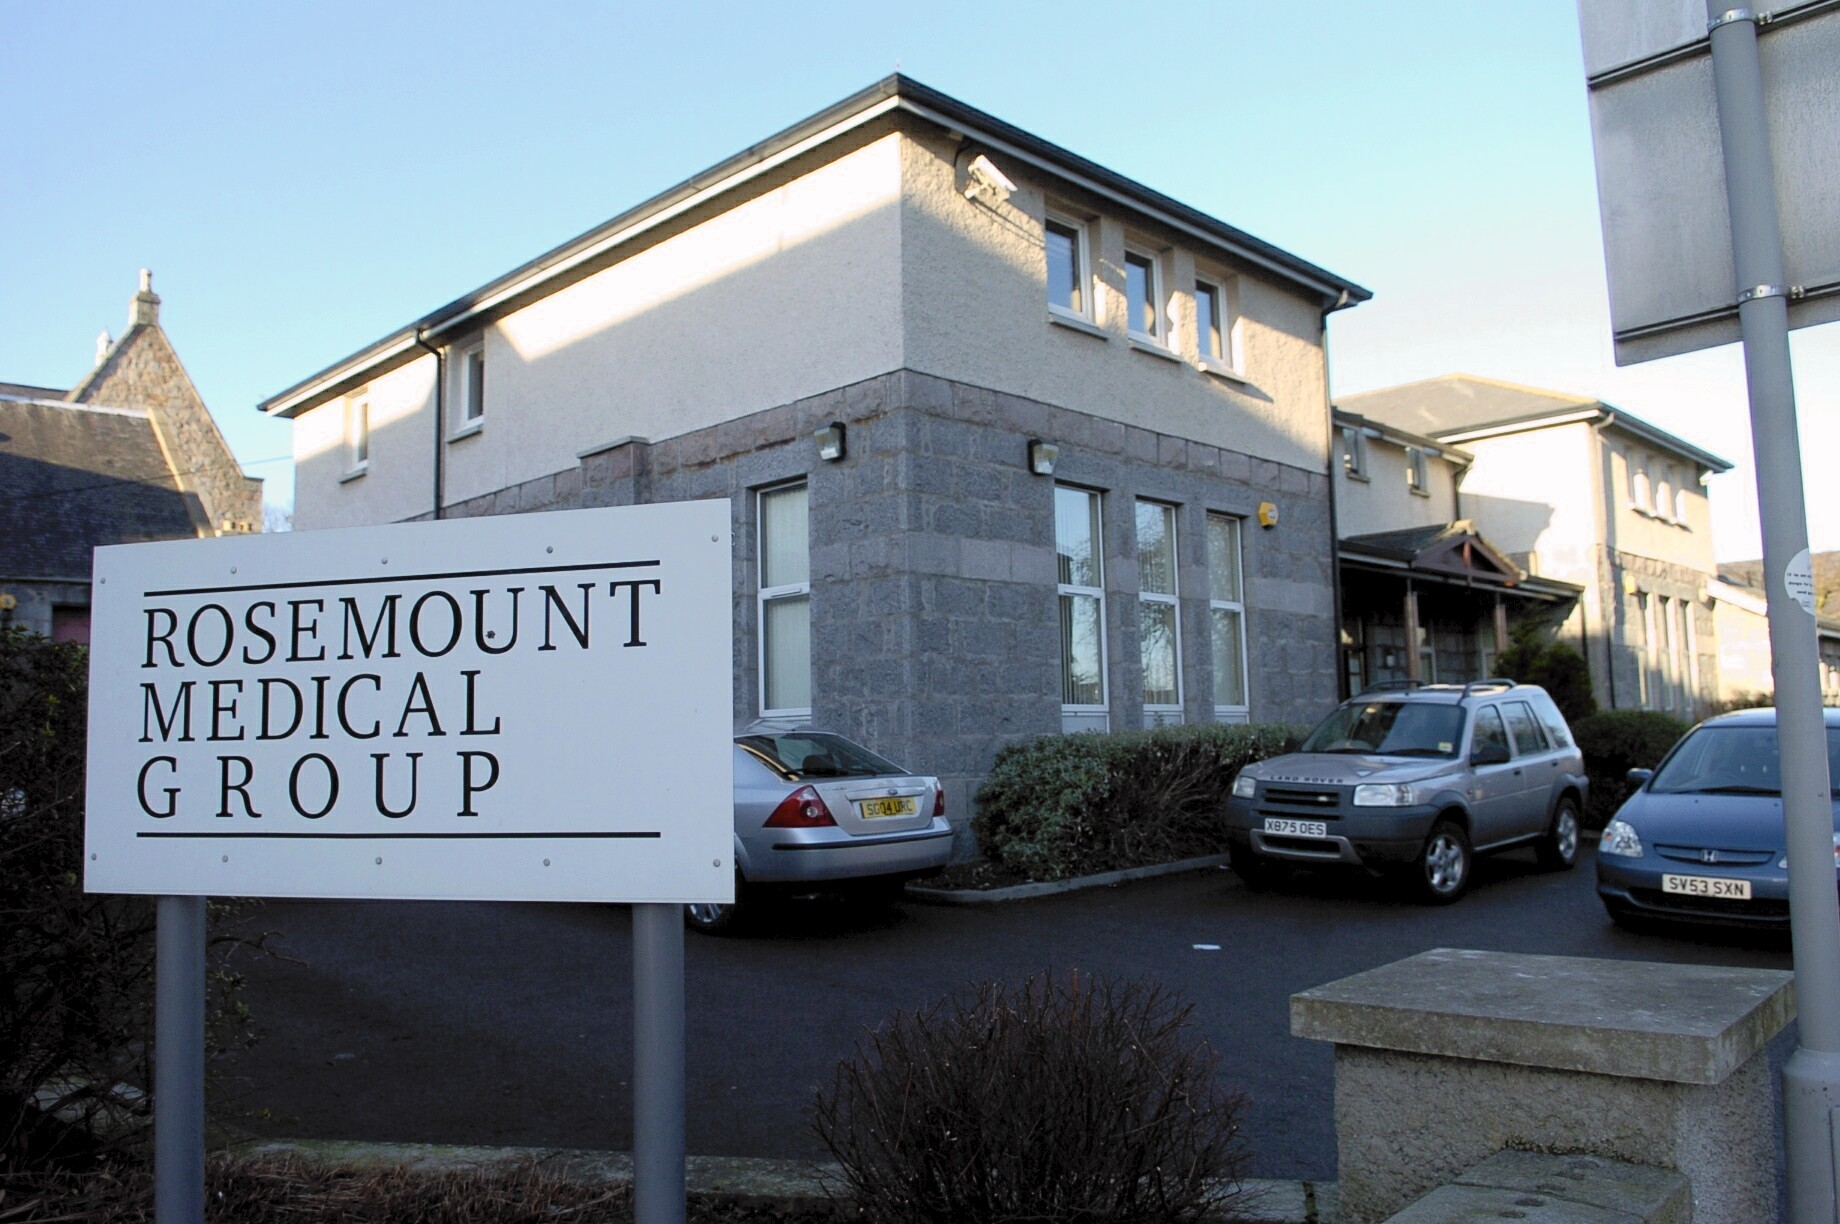 Rosemount Medical Group is set to close due to recruitment problems